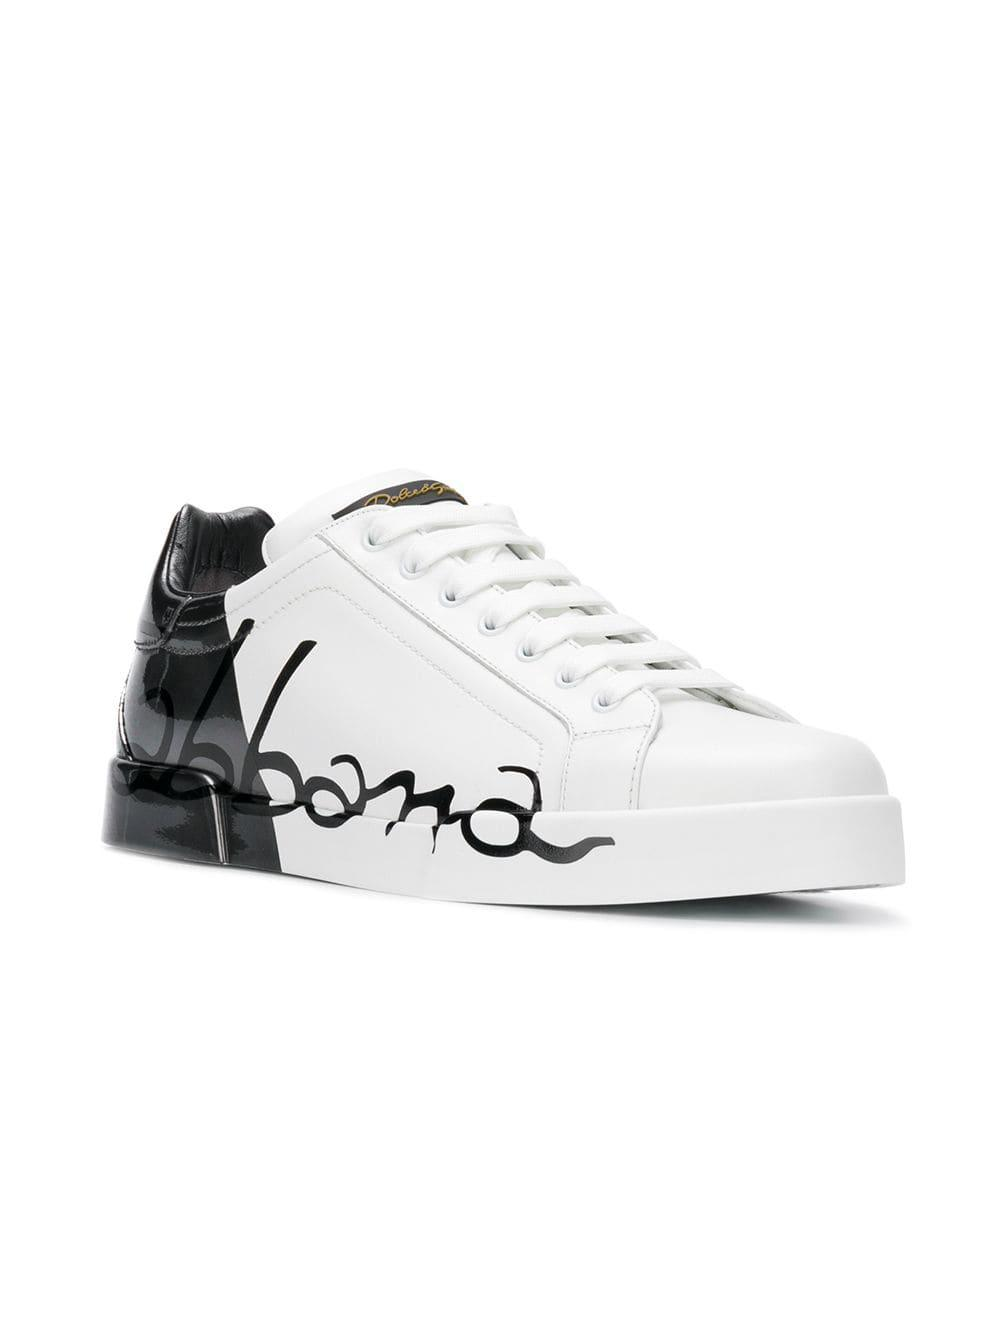 Lyst - Dolce   Gabbana Portofino Sneakers In Leather And Paint in ... 608f71104dc0